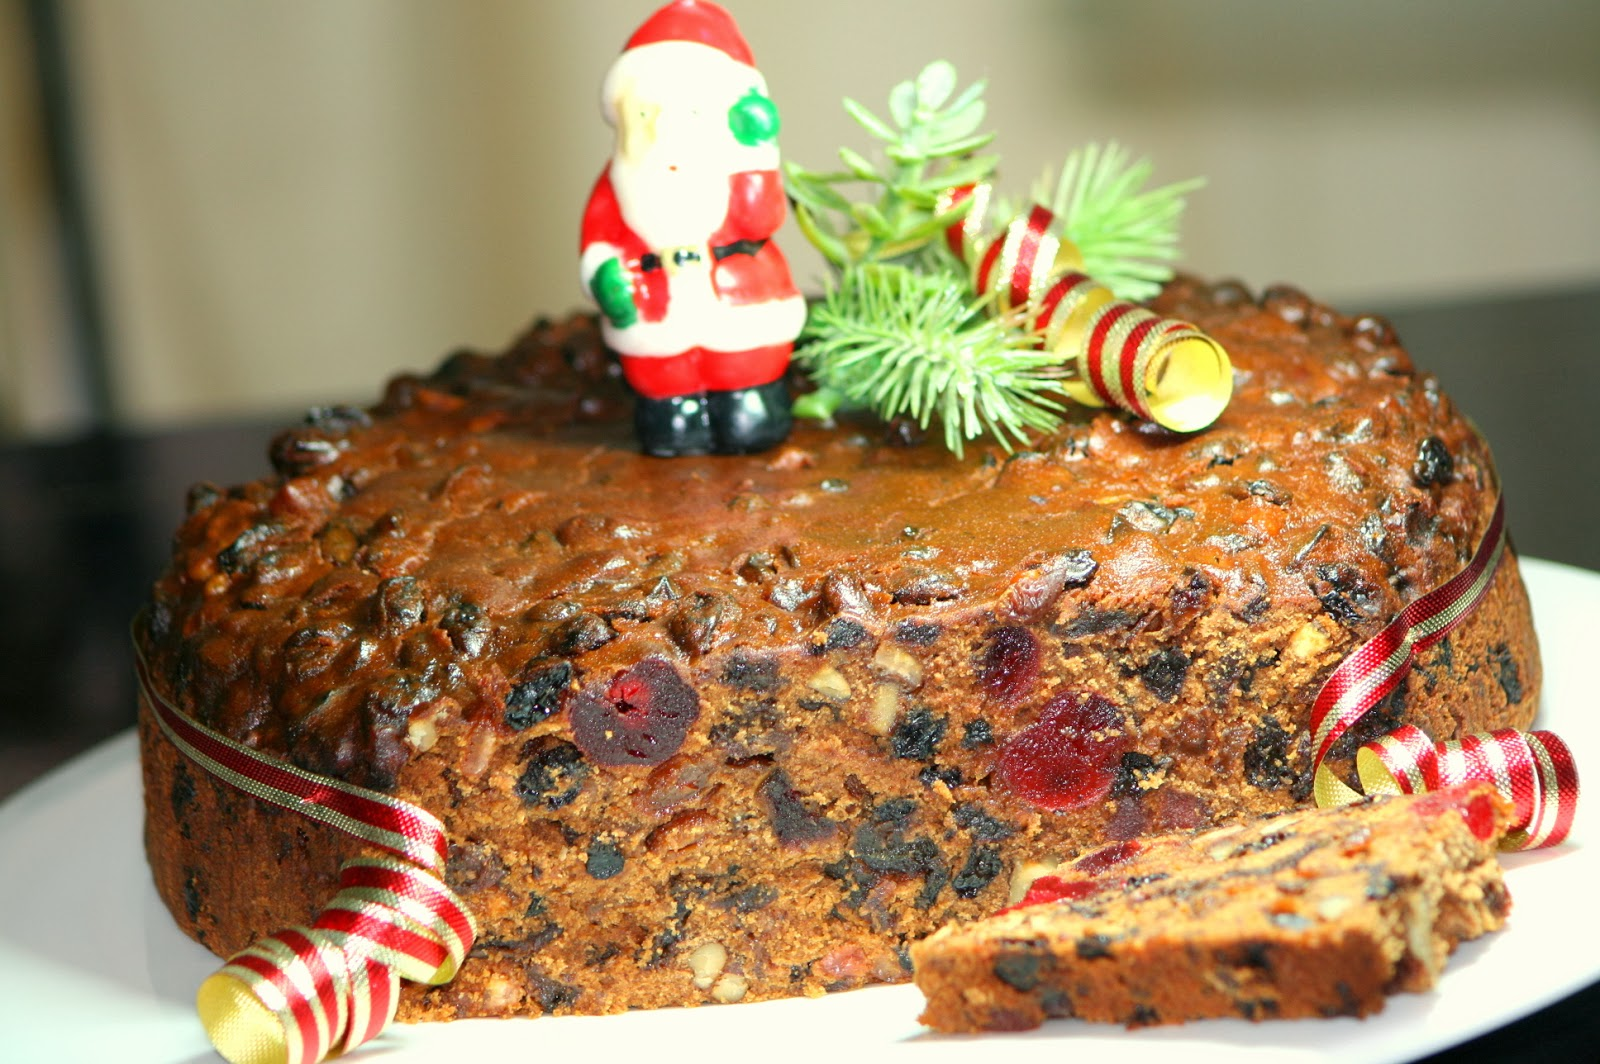 Christmas Crafts Decorations Cake And Sweets Download